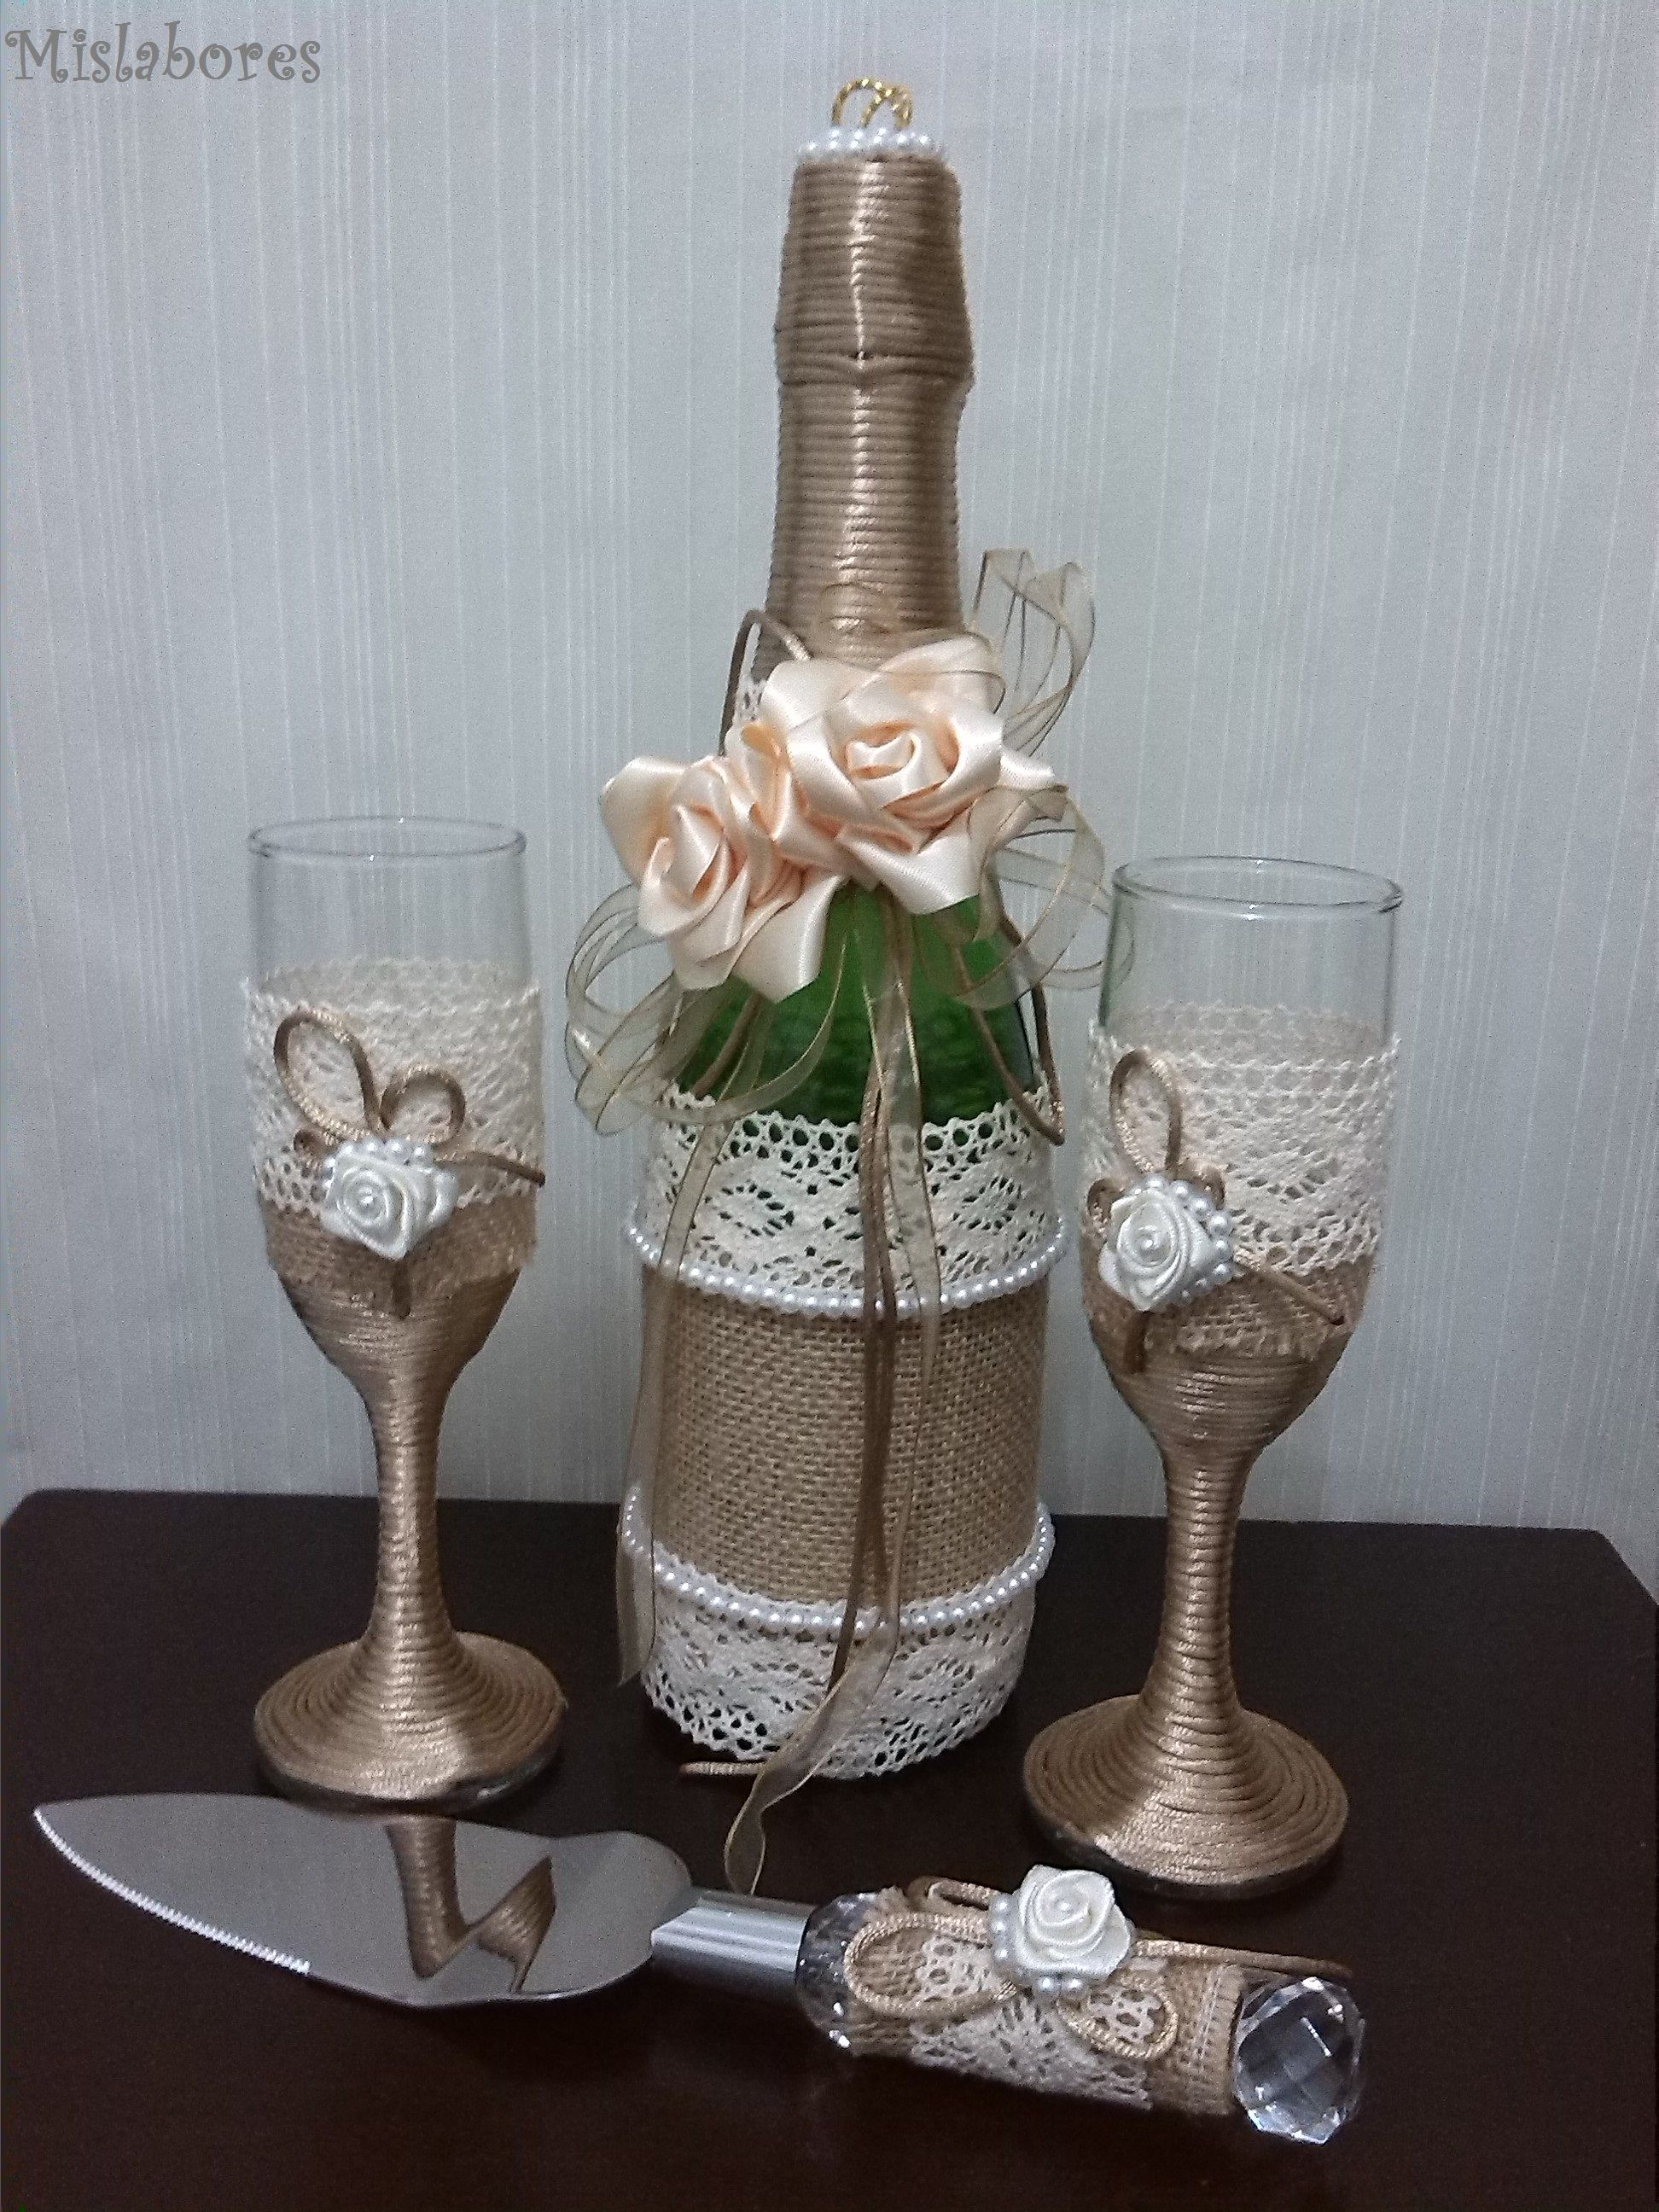 Botellas De Vidrio Decoradas Para Boda Botella Y Copas Decoradas Para Boda Botellas Decoradas Bottle